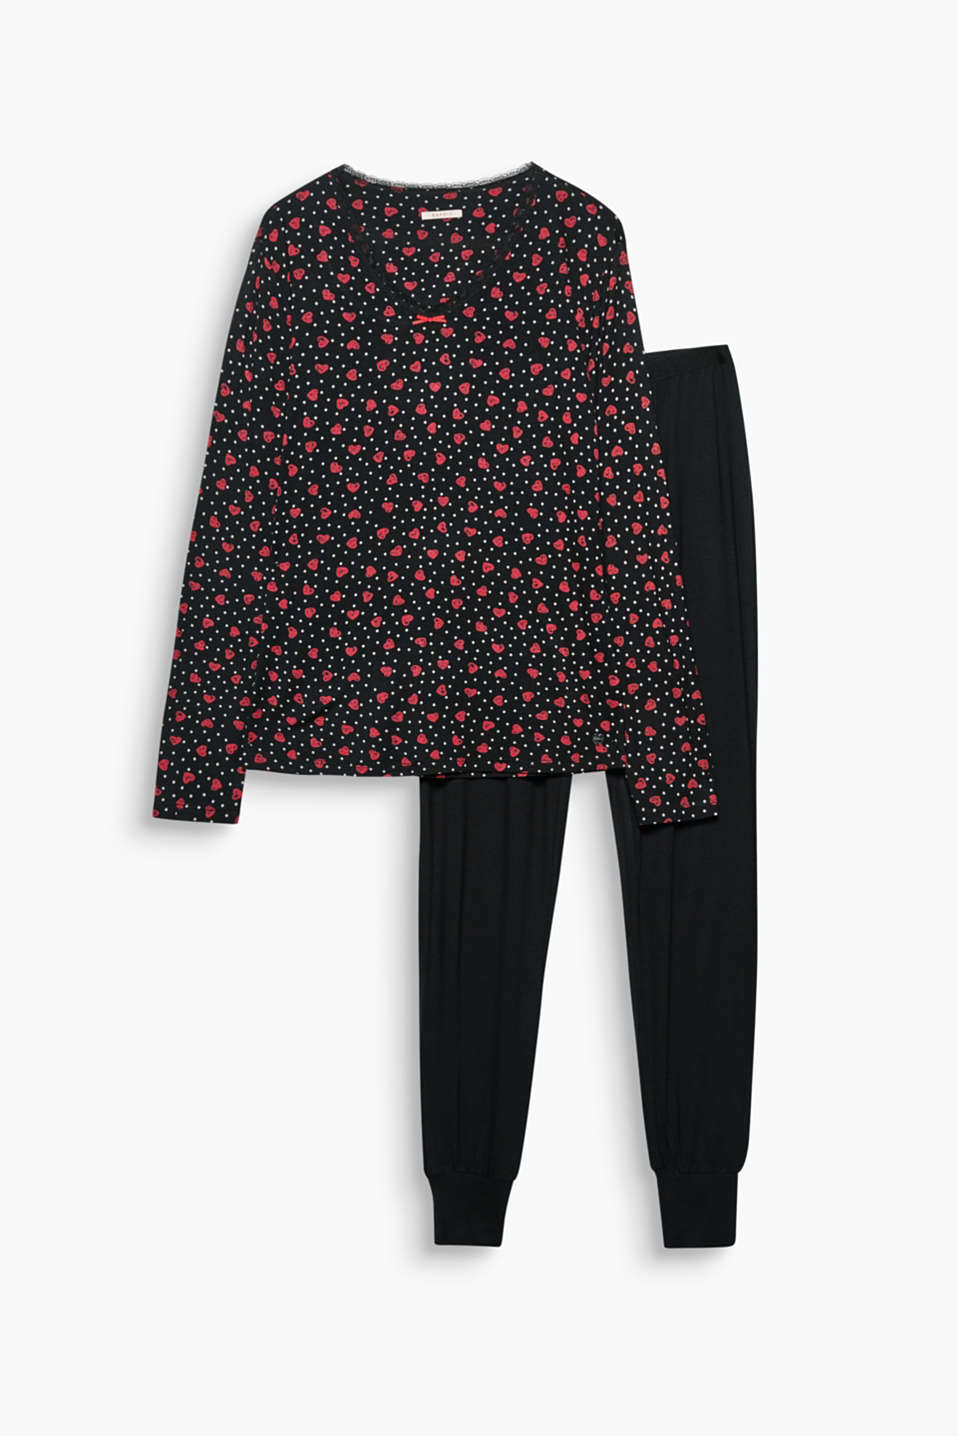 Close to the heart: you will love these super soft jersey pyjamas with a printed top and plain coloured bottoms!